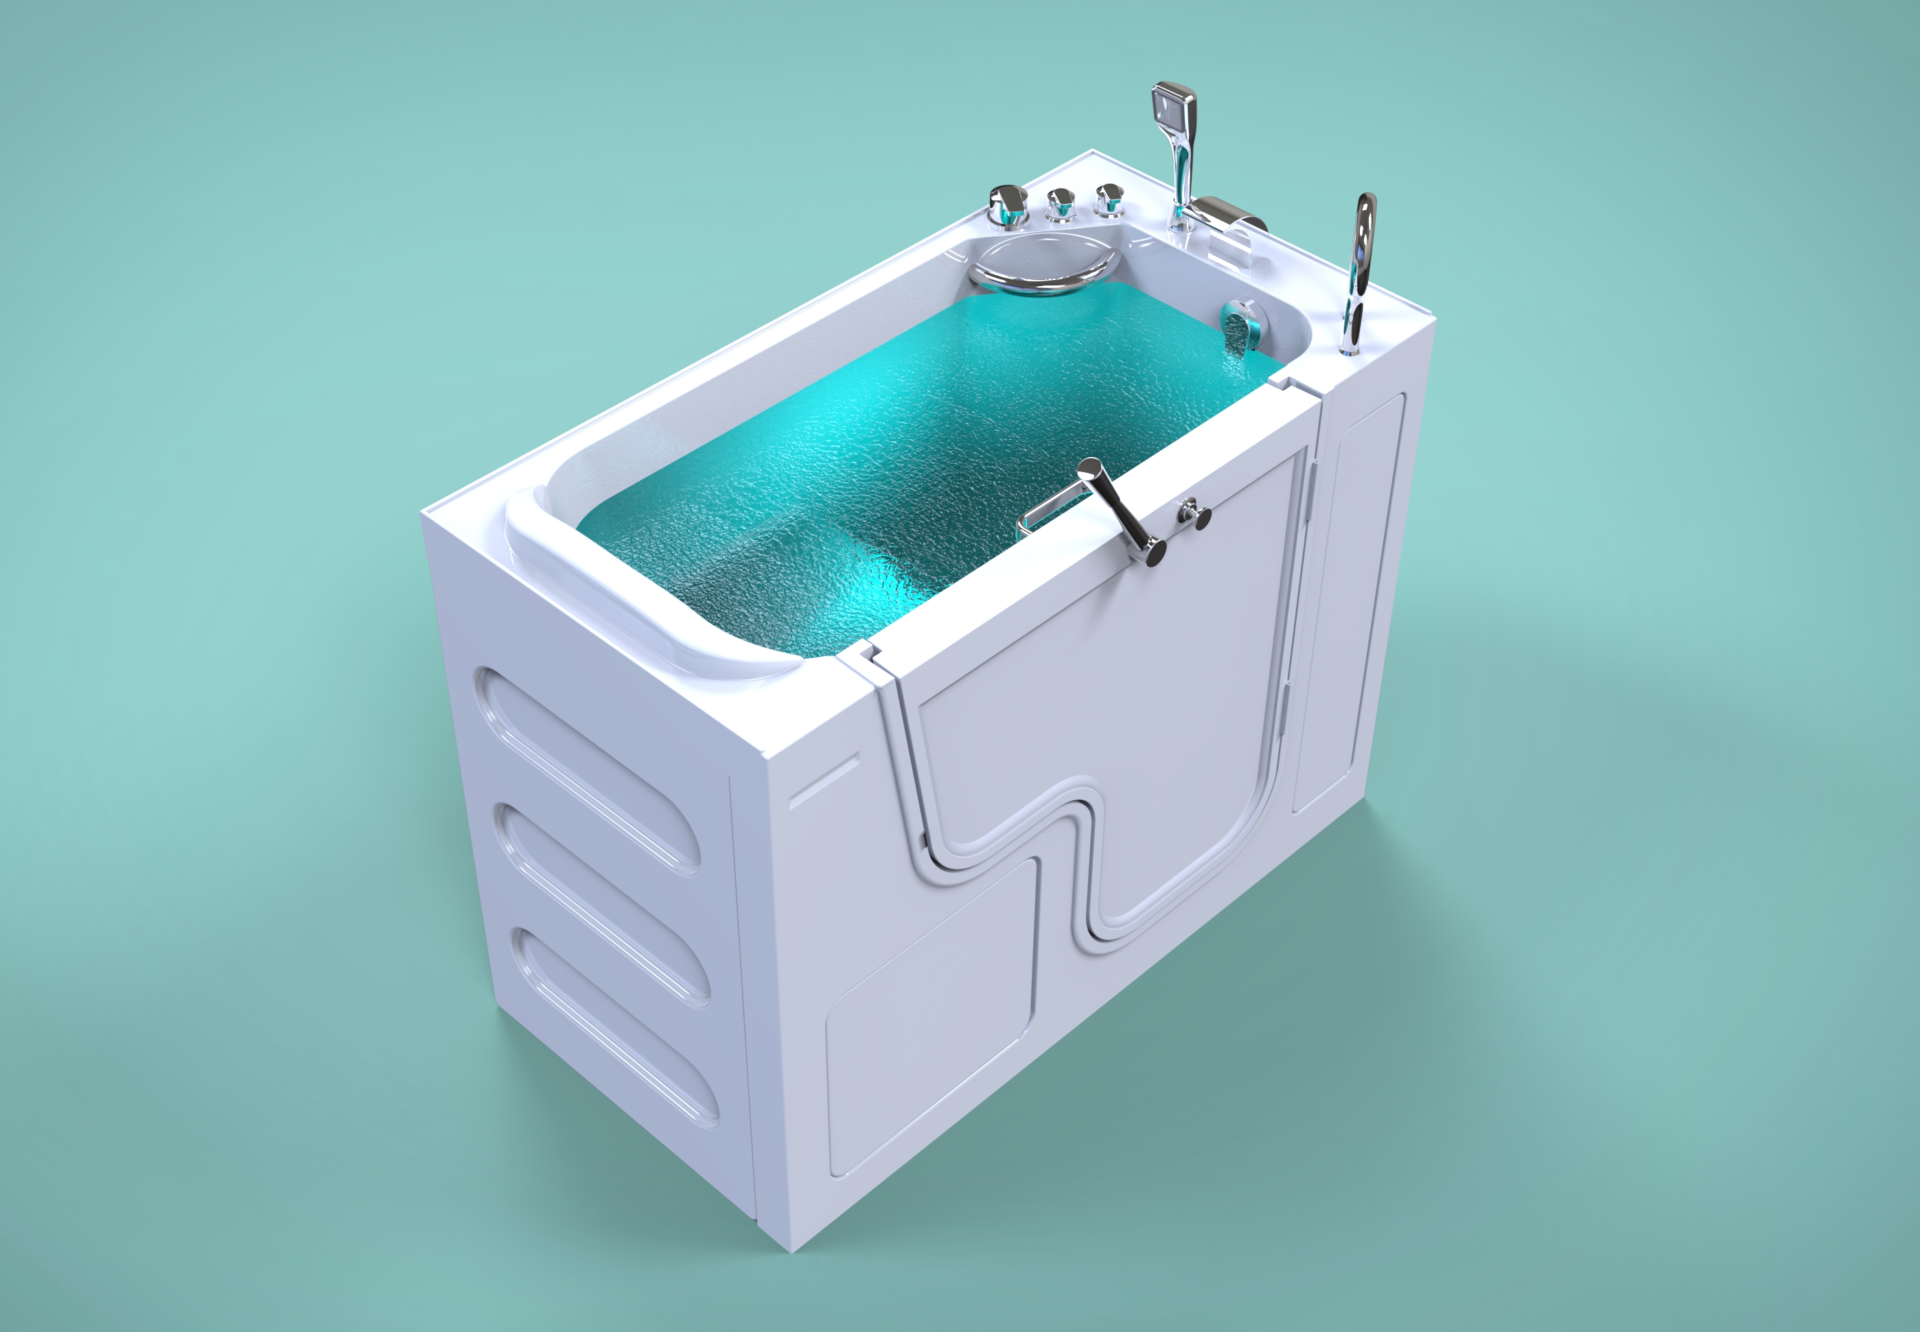 3d model of Panama style walk-in bathtub with door closed, full of water, from above